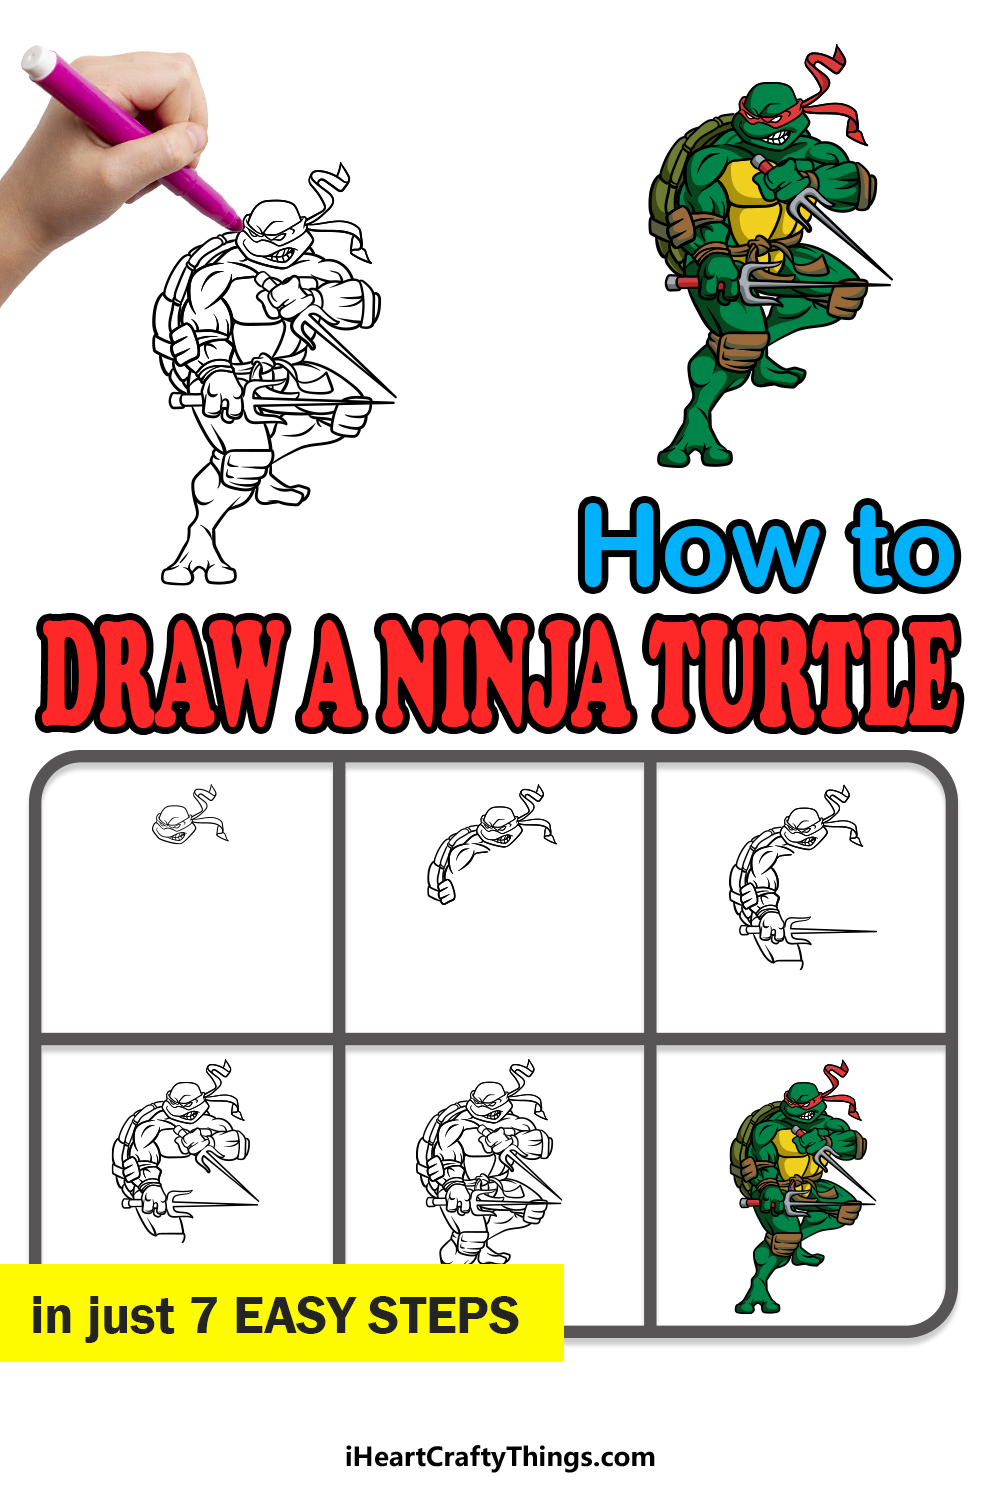 how to draw a ninja turtle in 7 easy steps